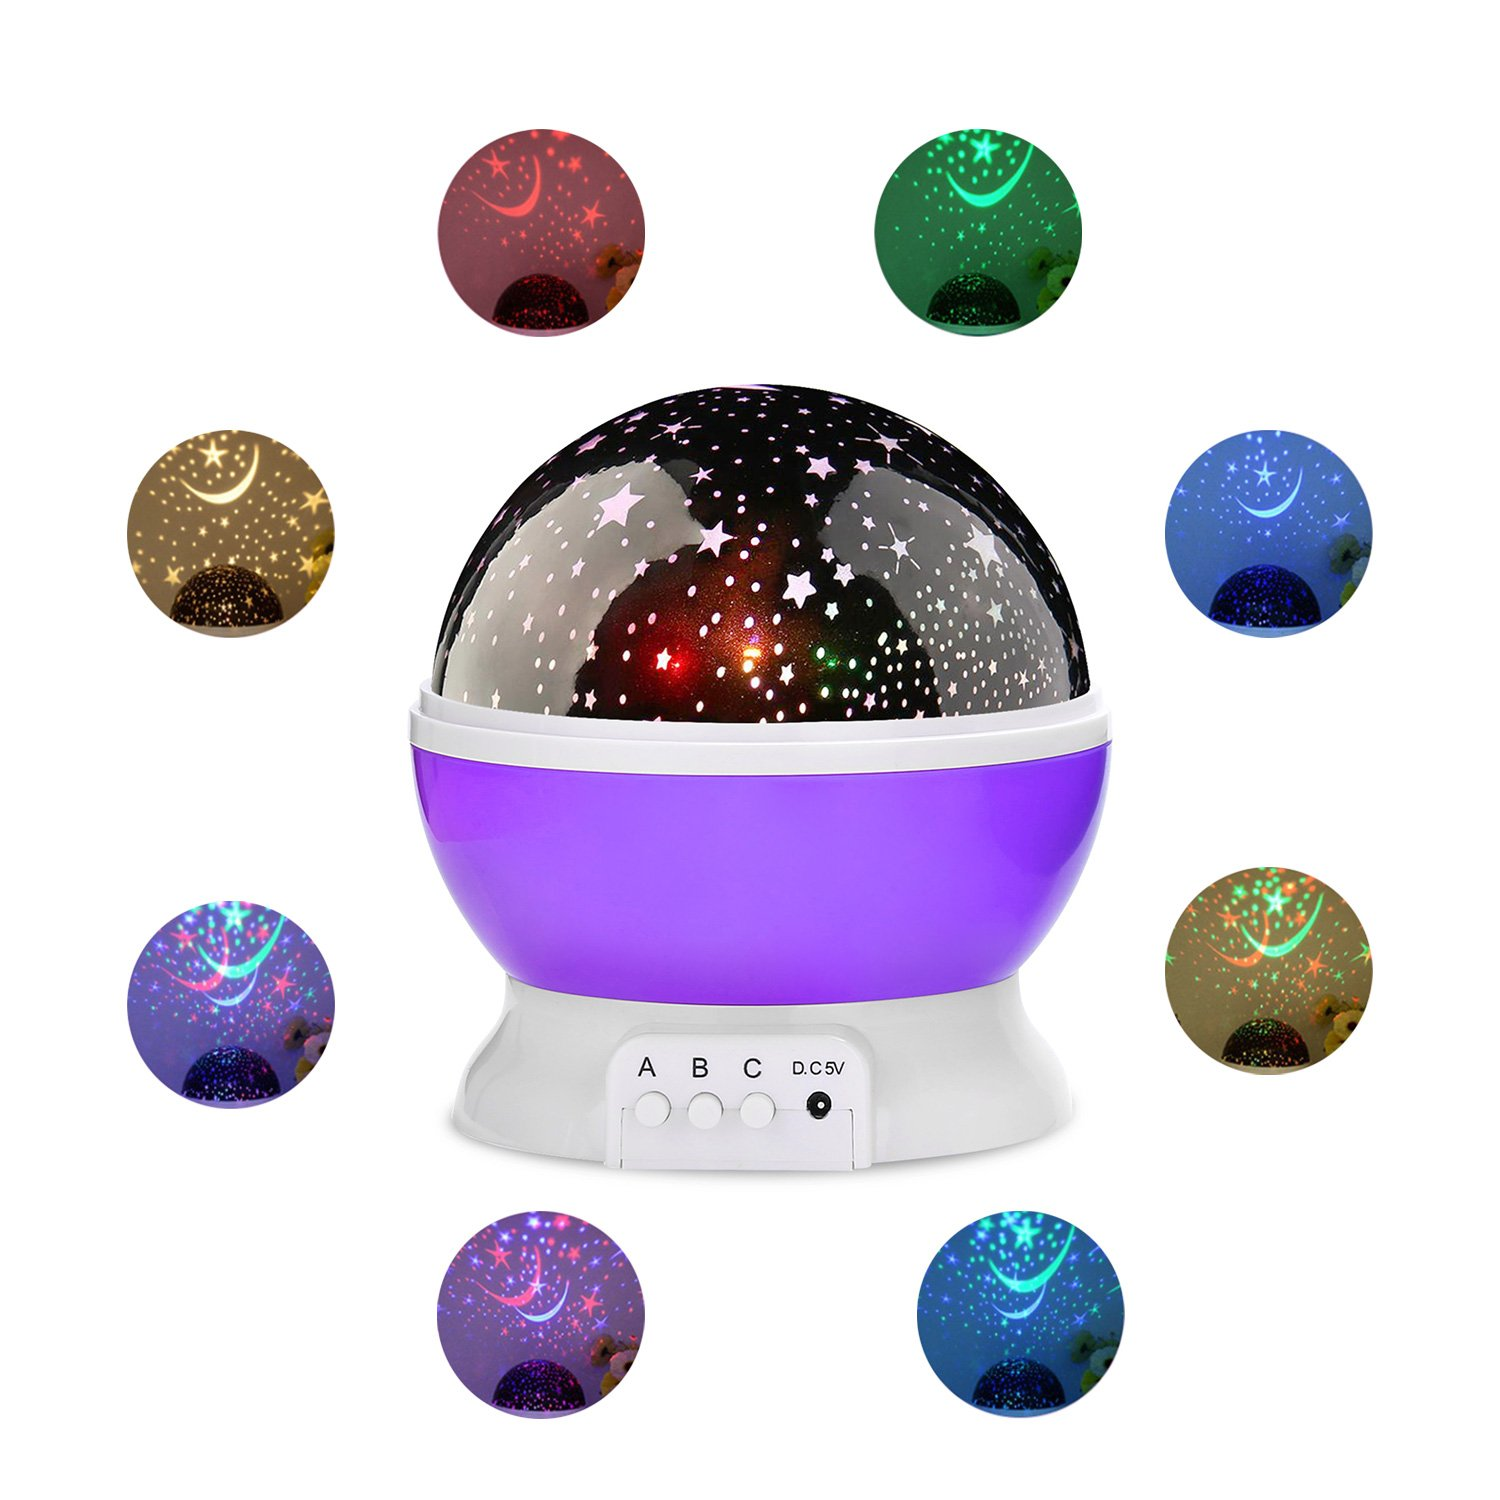 Hogoo Dream Starry Romantic Rotating Cosmos Moon Projector 360 Degree Rotation 4 LED Bulbs 9 Color Changing 3 Kinds of Switching Modes 39.38 inch USB Cable for Men Women Kids Baby Best Gifts,Purple